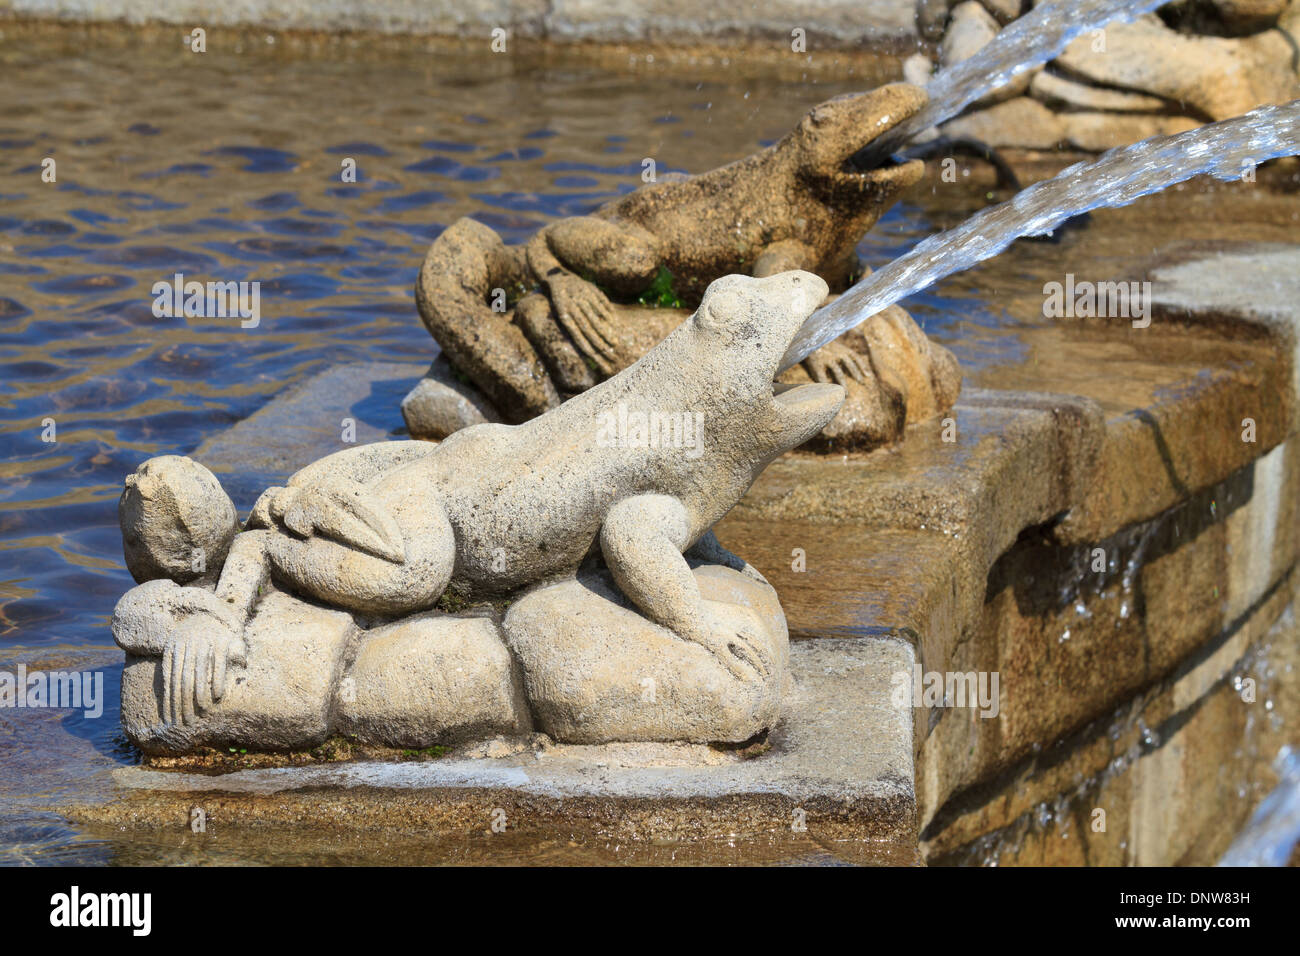 Frog Fountain Architectural Detail - Stock Image